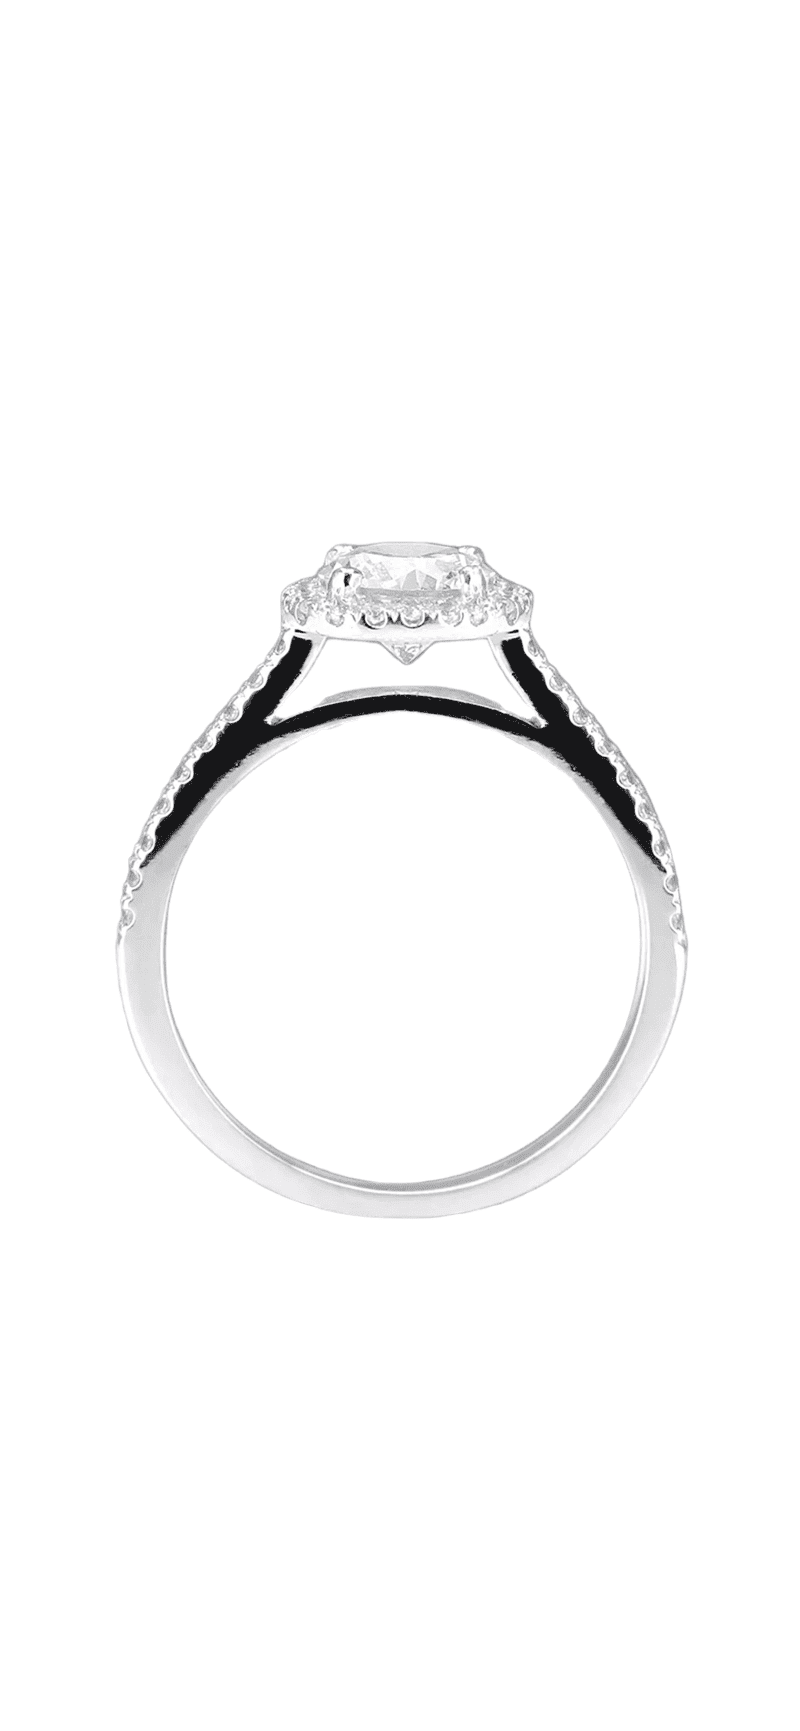 14ct White Gold Cushion Shaped Halo Ring 1ct